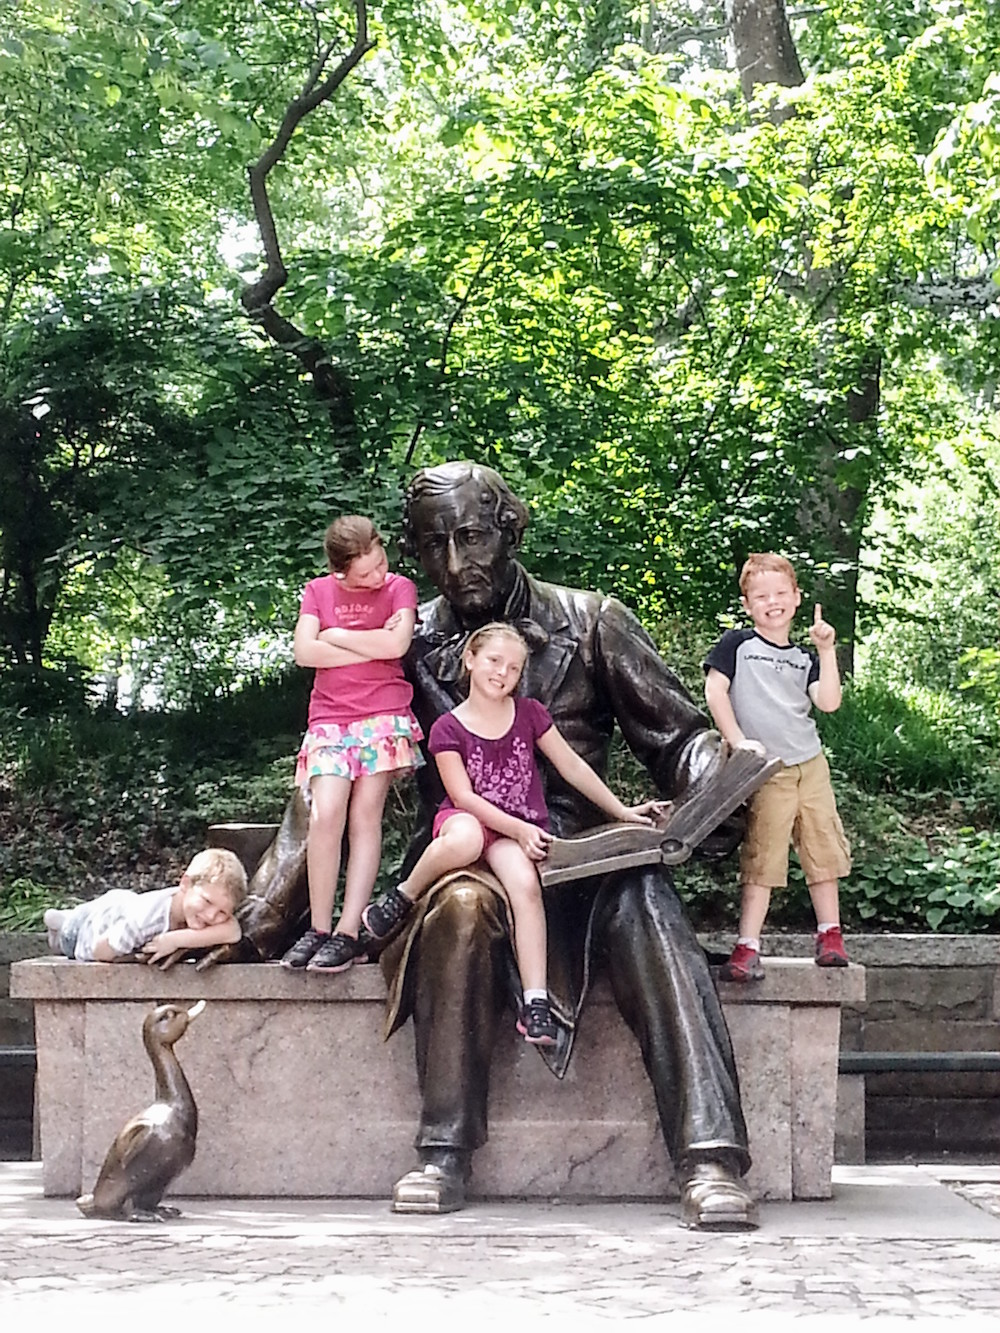 Hans Christian Andersen picture, Central Park, New York city.jpg